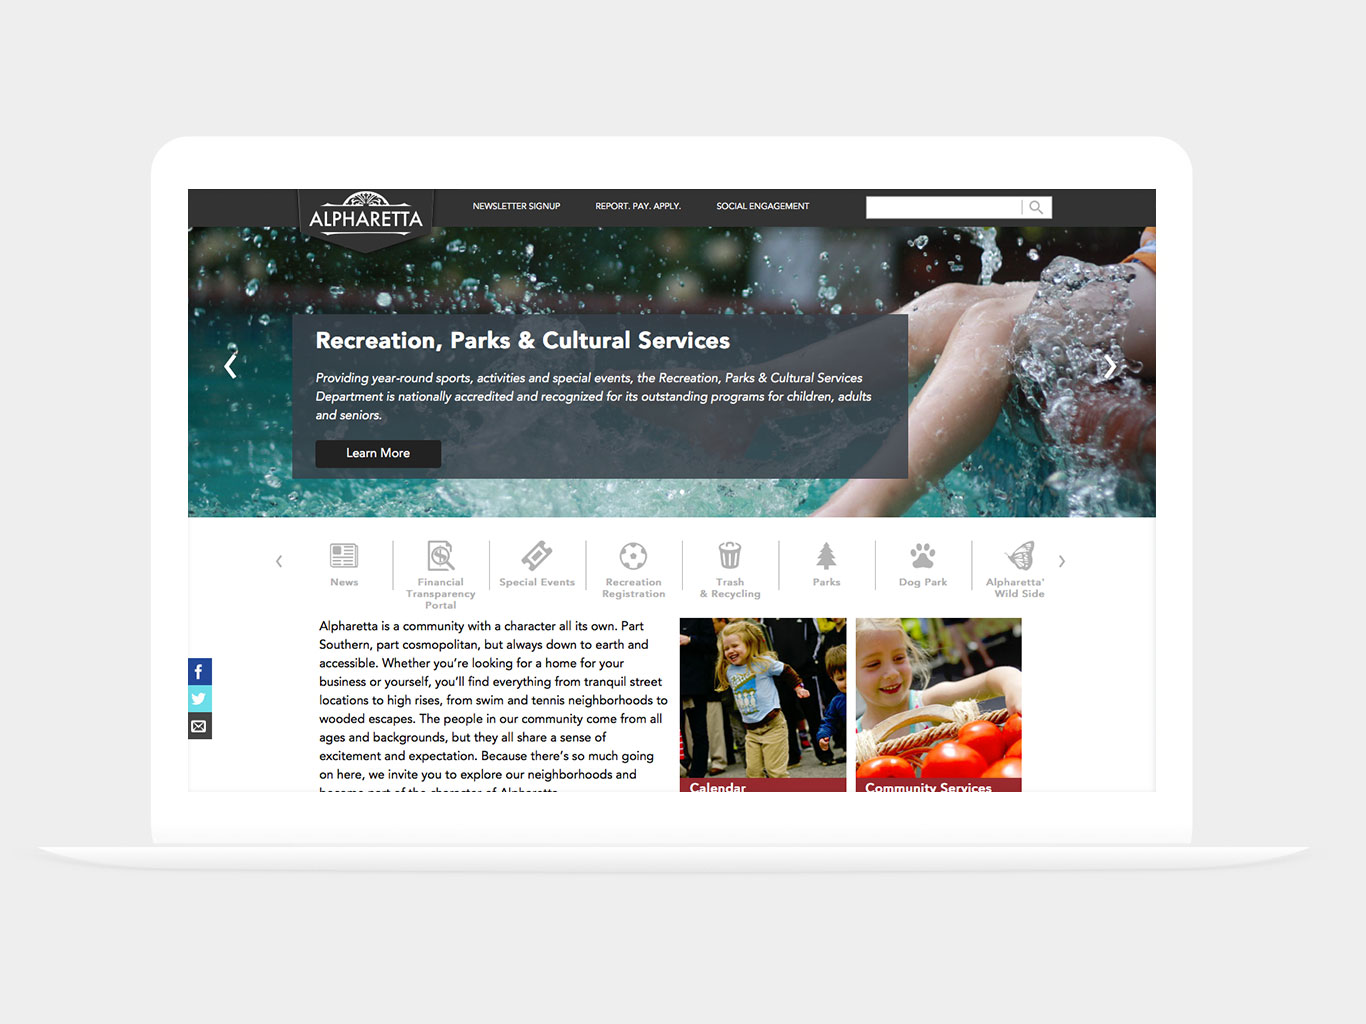 City of Alpharetta Website Design